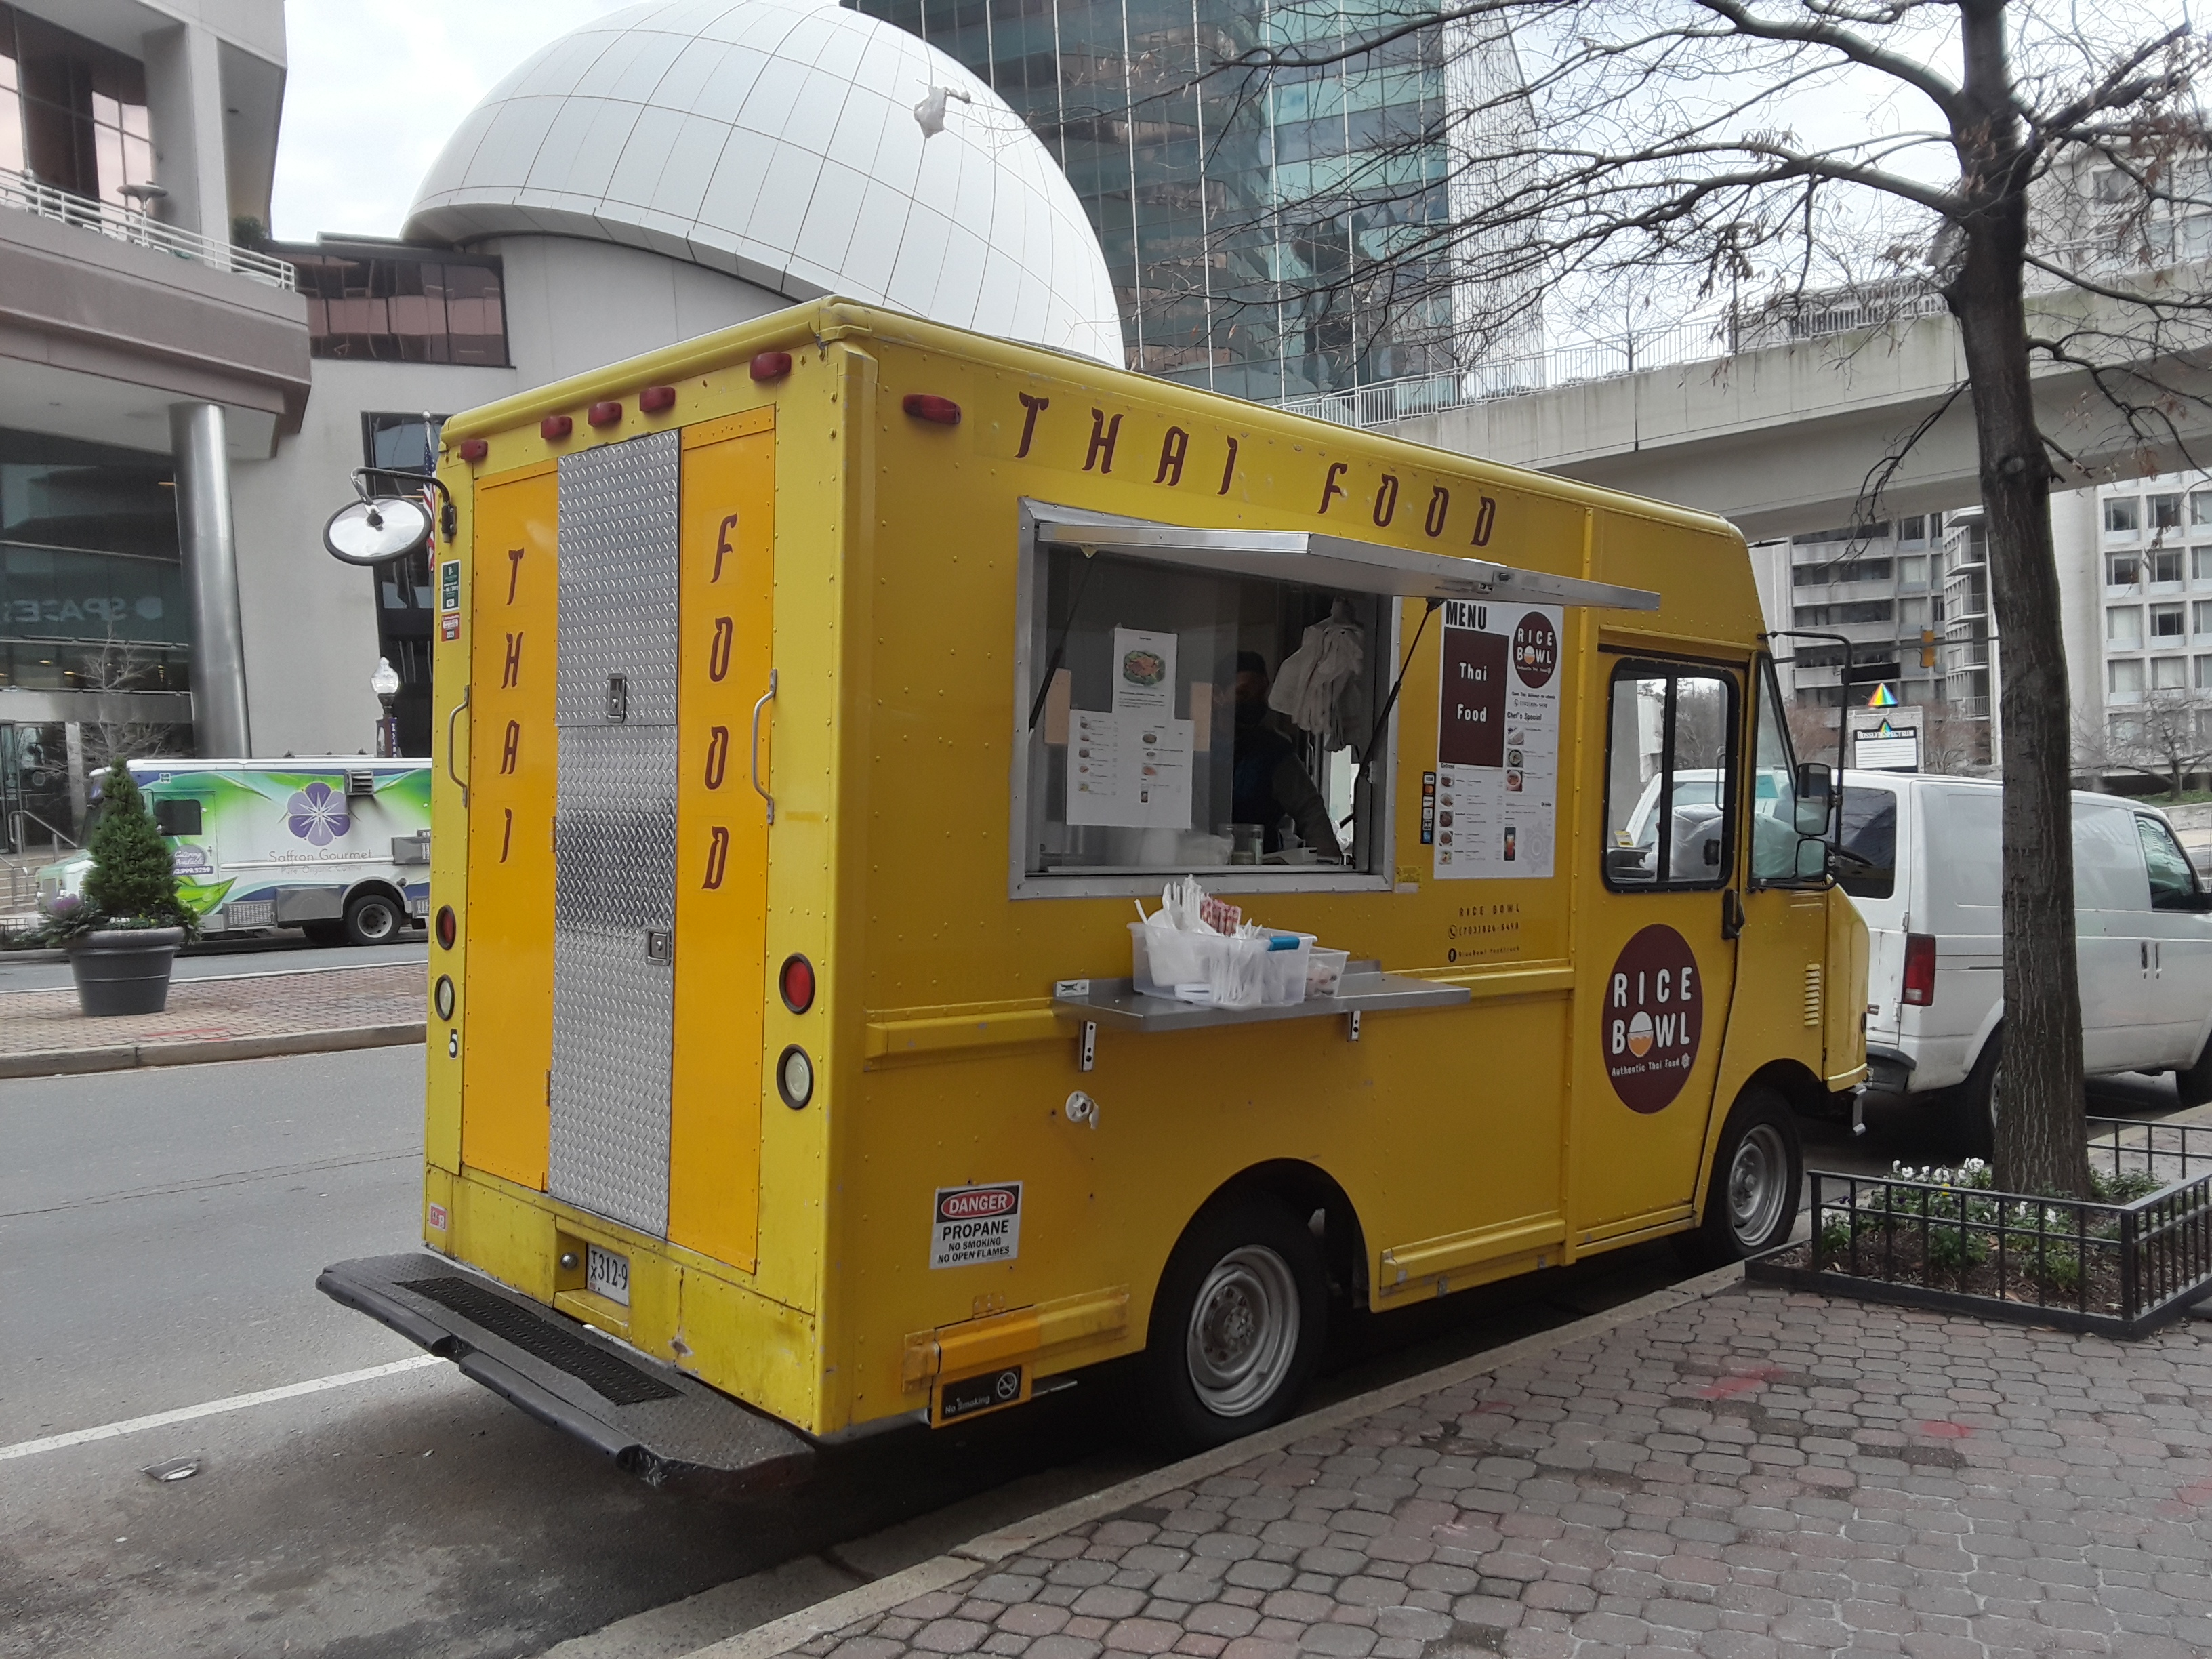 Thailand to Host World's Largest Food Trucks Parade